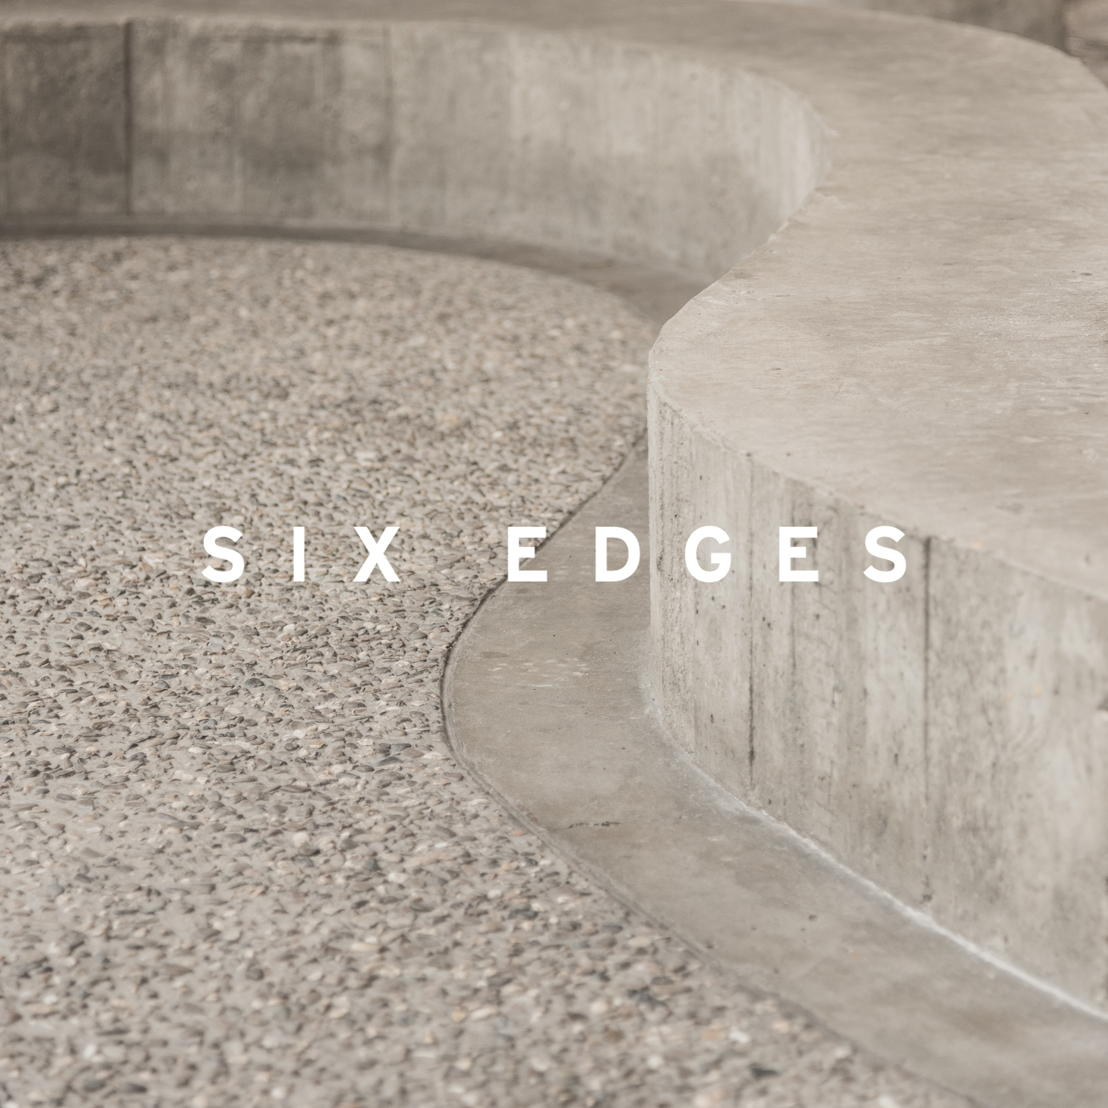 Six Edges